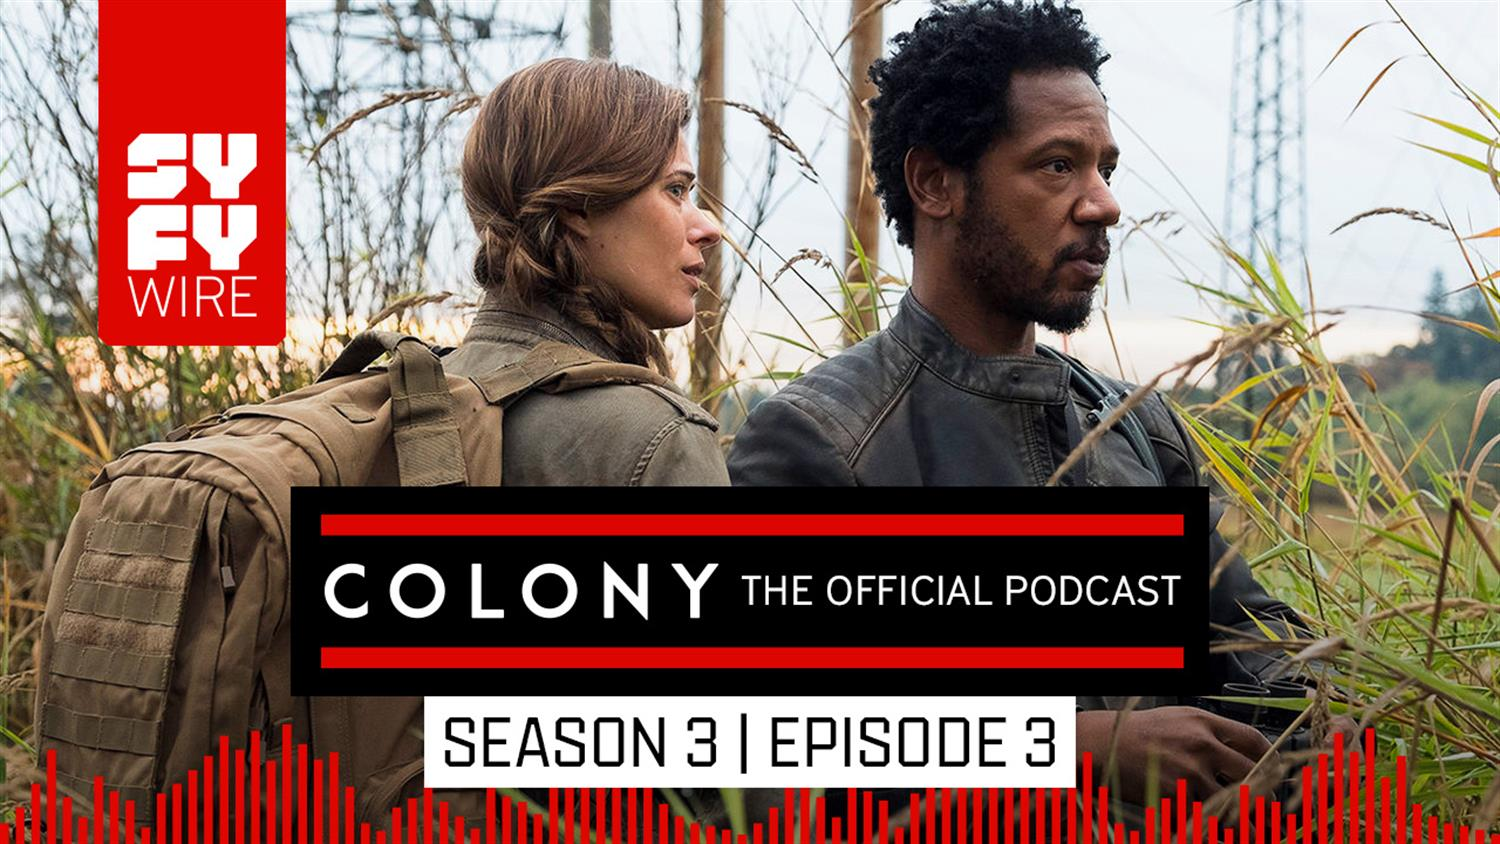 Colony The Official Podcast: Season 3, Episode 3